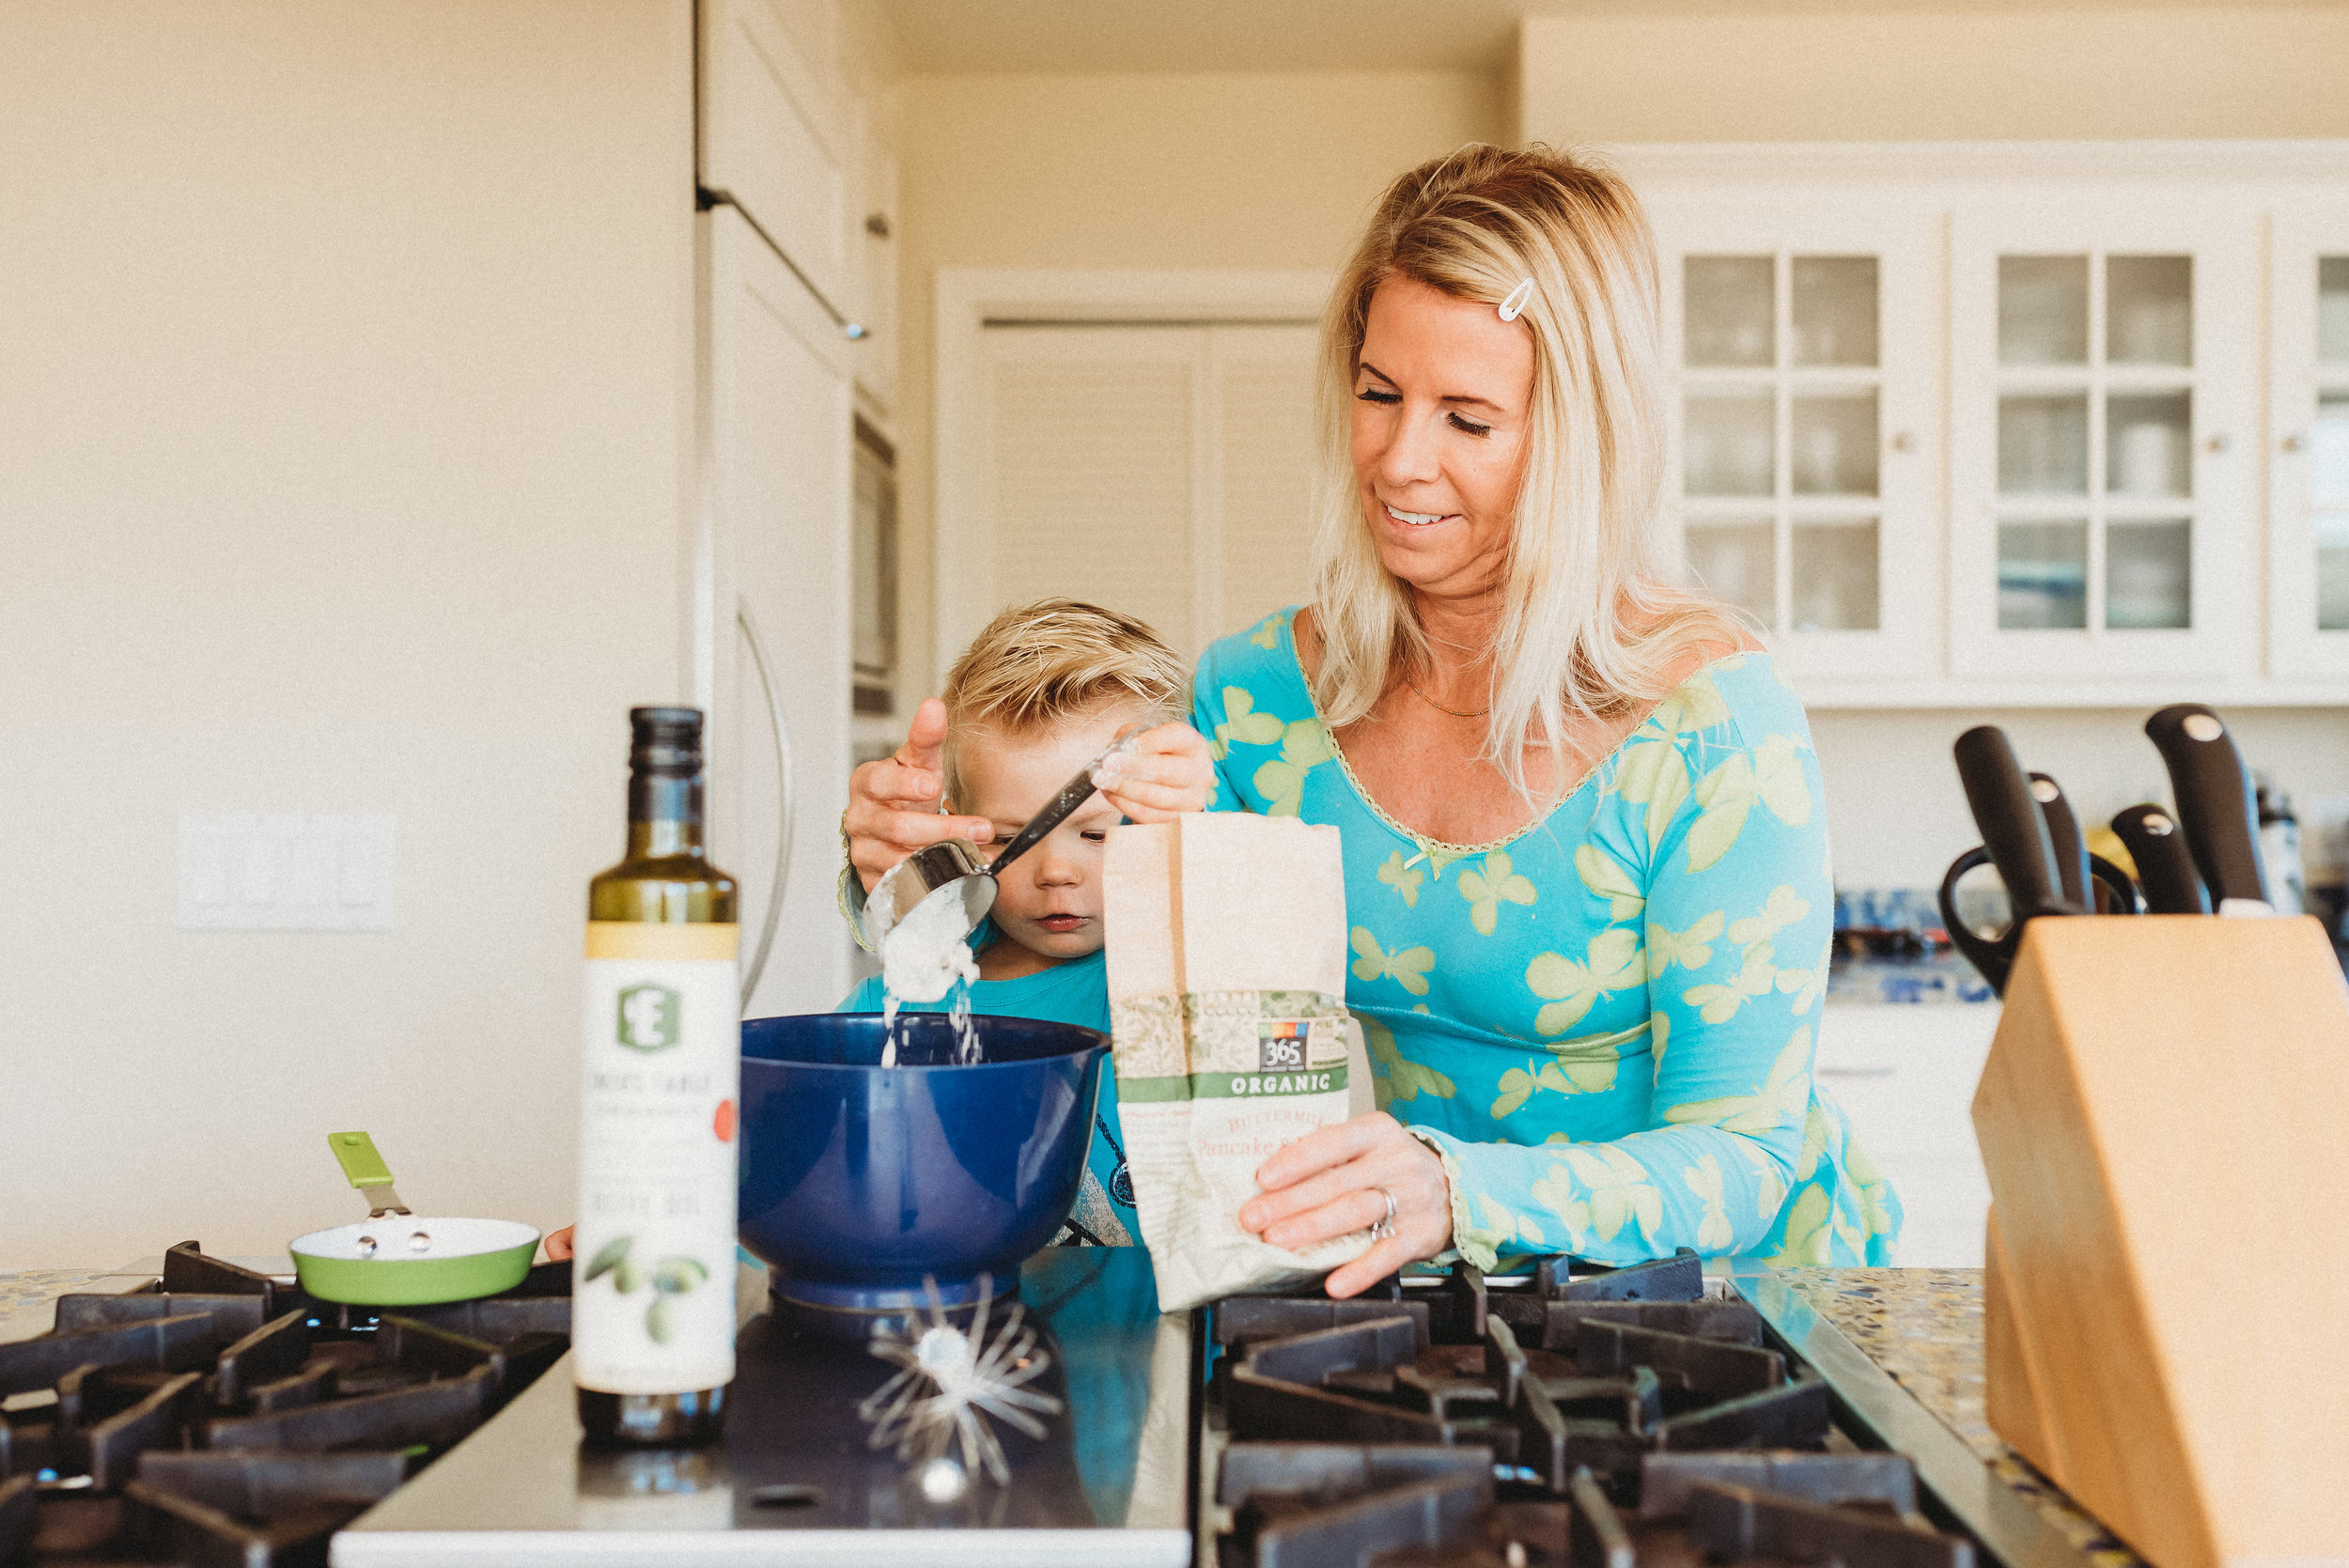 family pancakes morning routine mom of two toddlers pj mornings family time quality time4.jpg